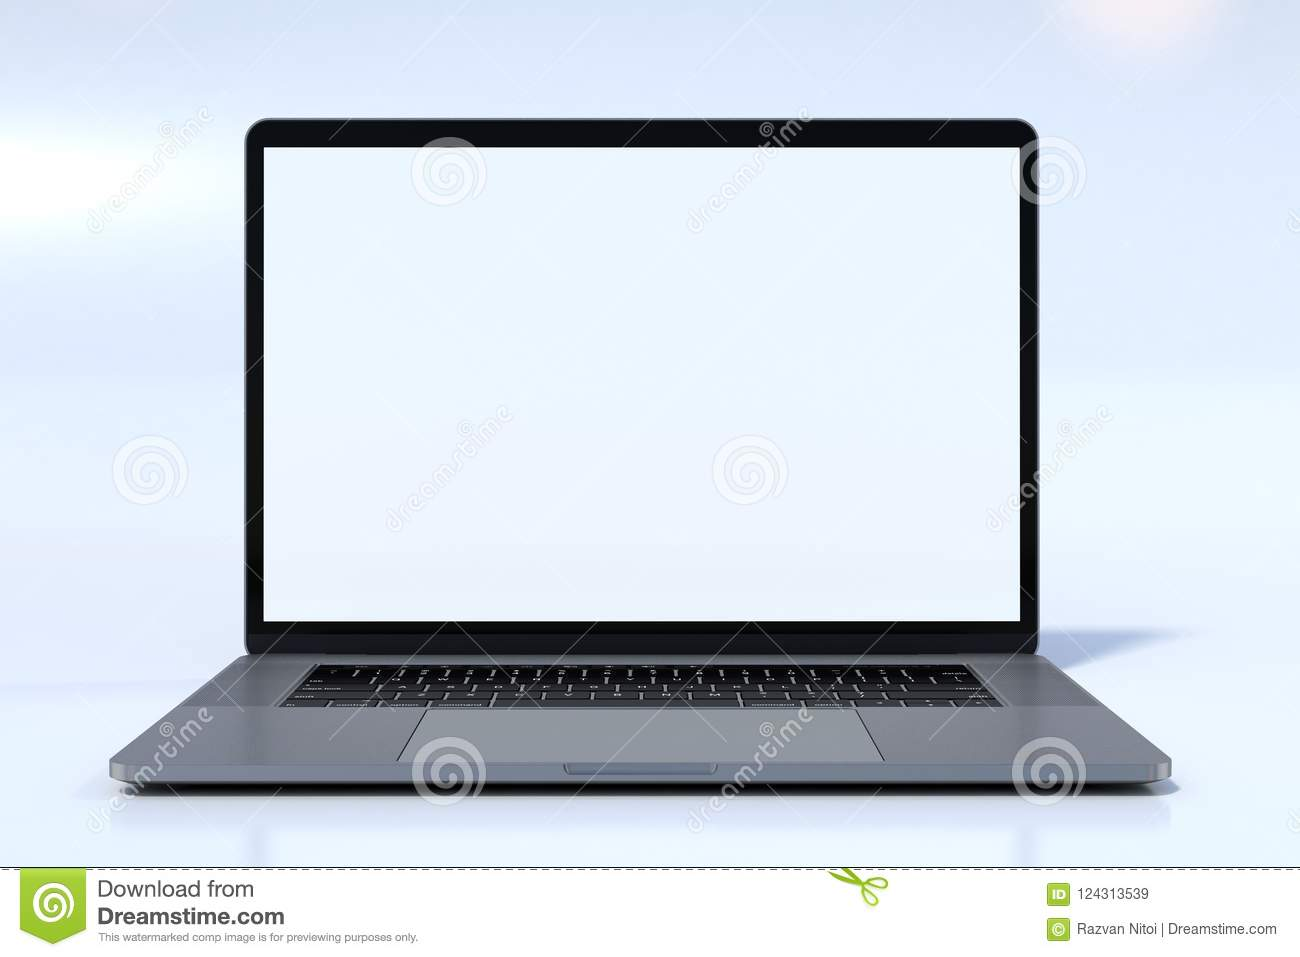 MacBook Pro style laptop computer front view